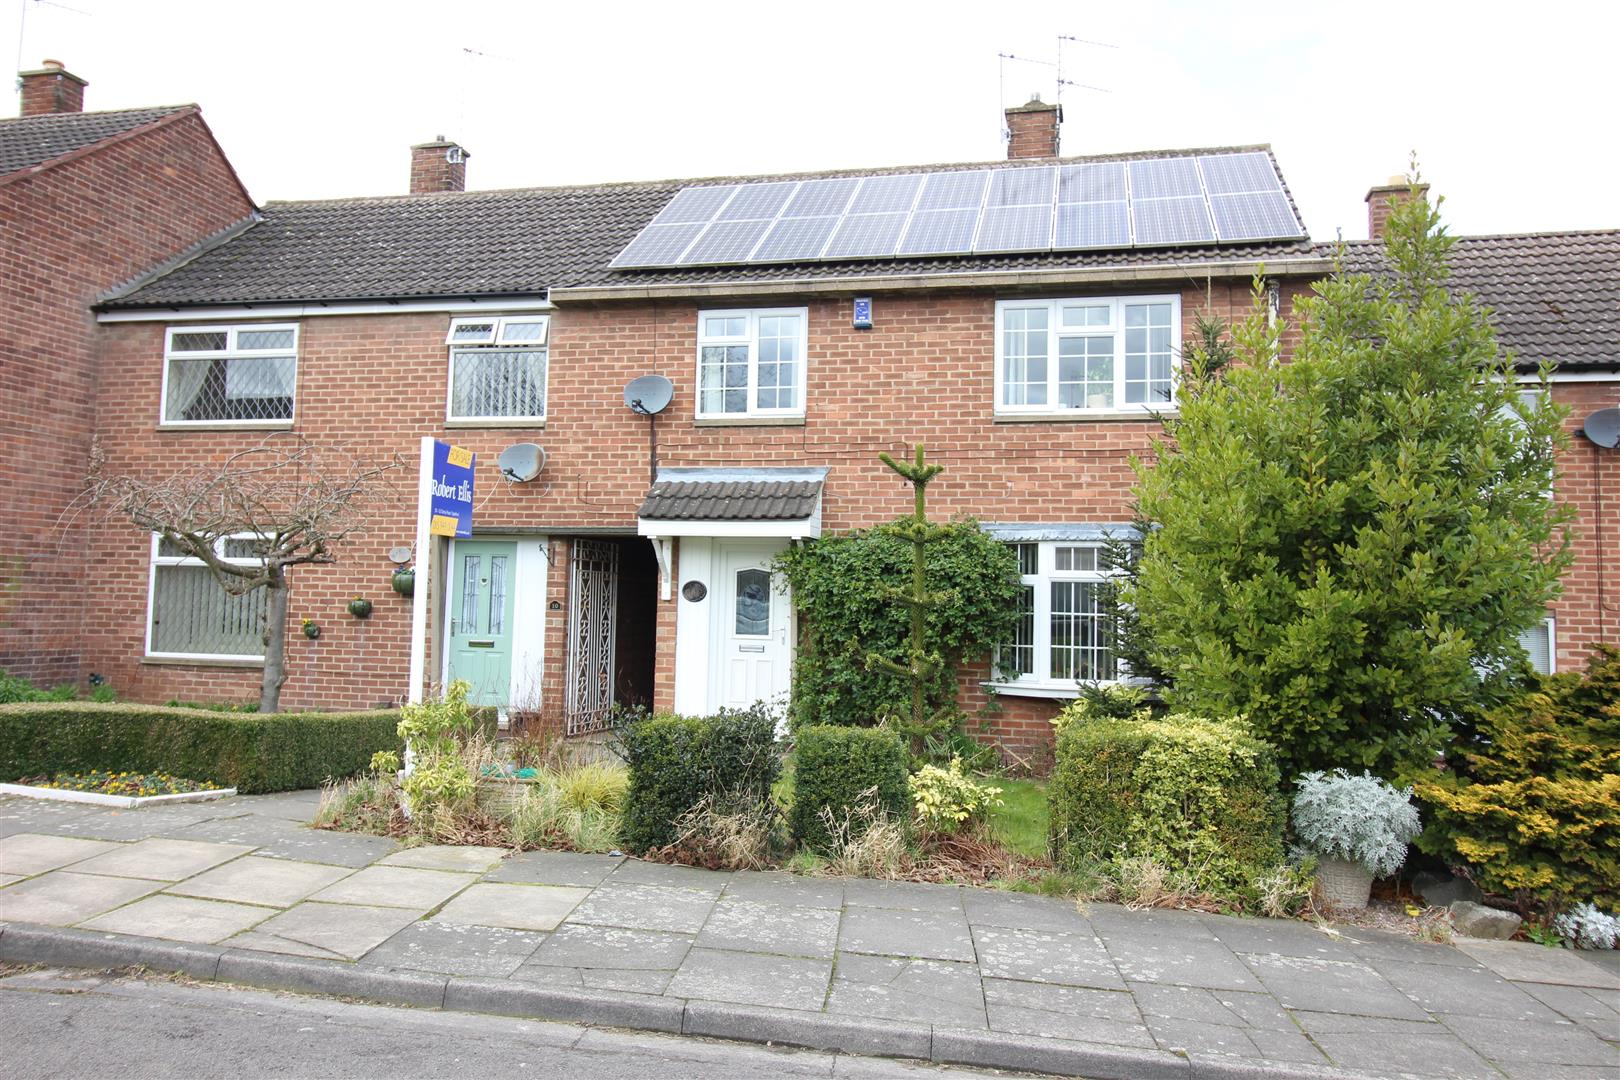 3 Bedrooms Terraced House for sale in Rowan Avenue, Stapleford